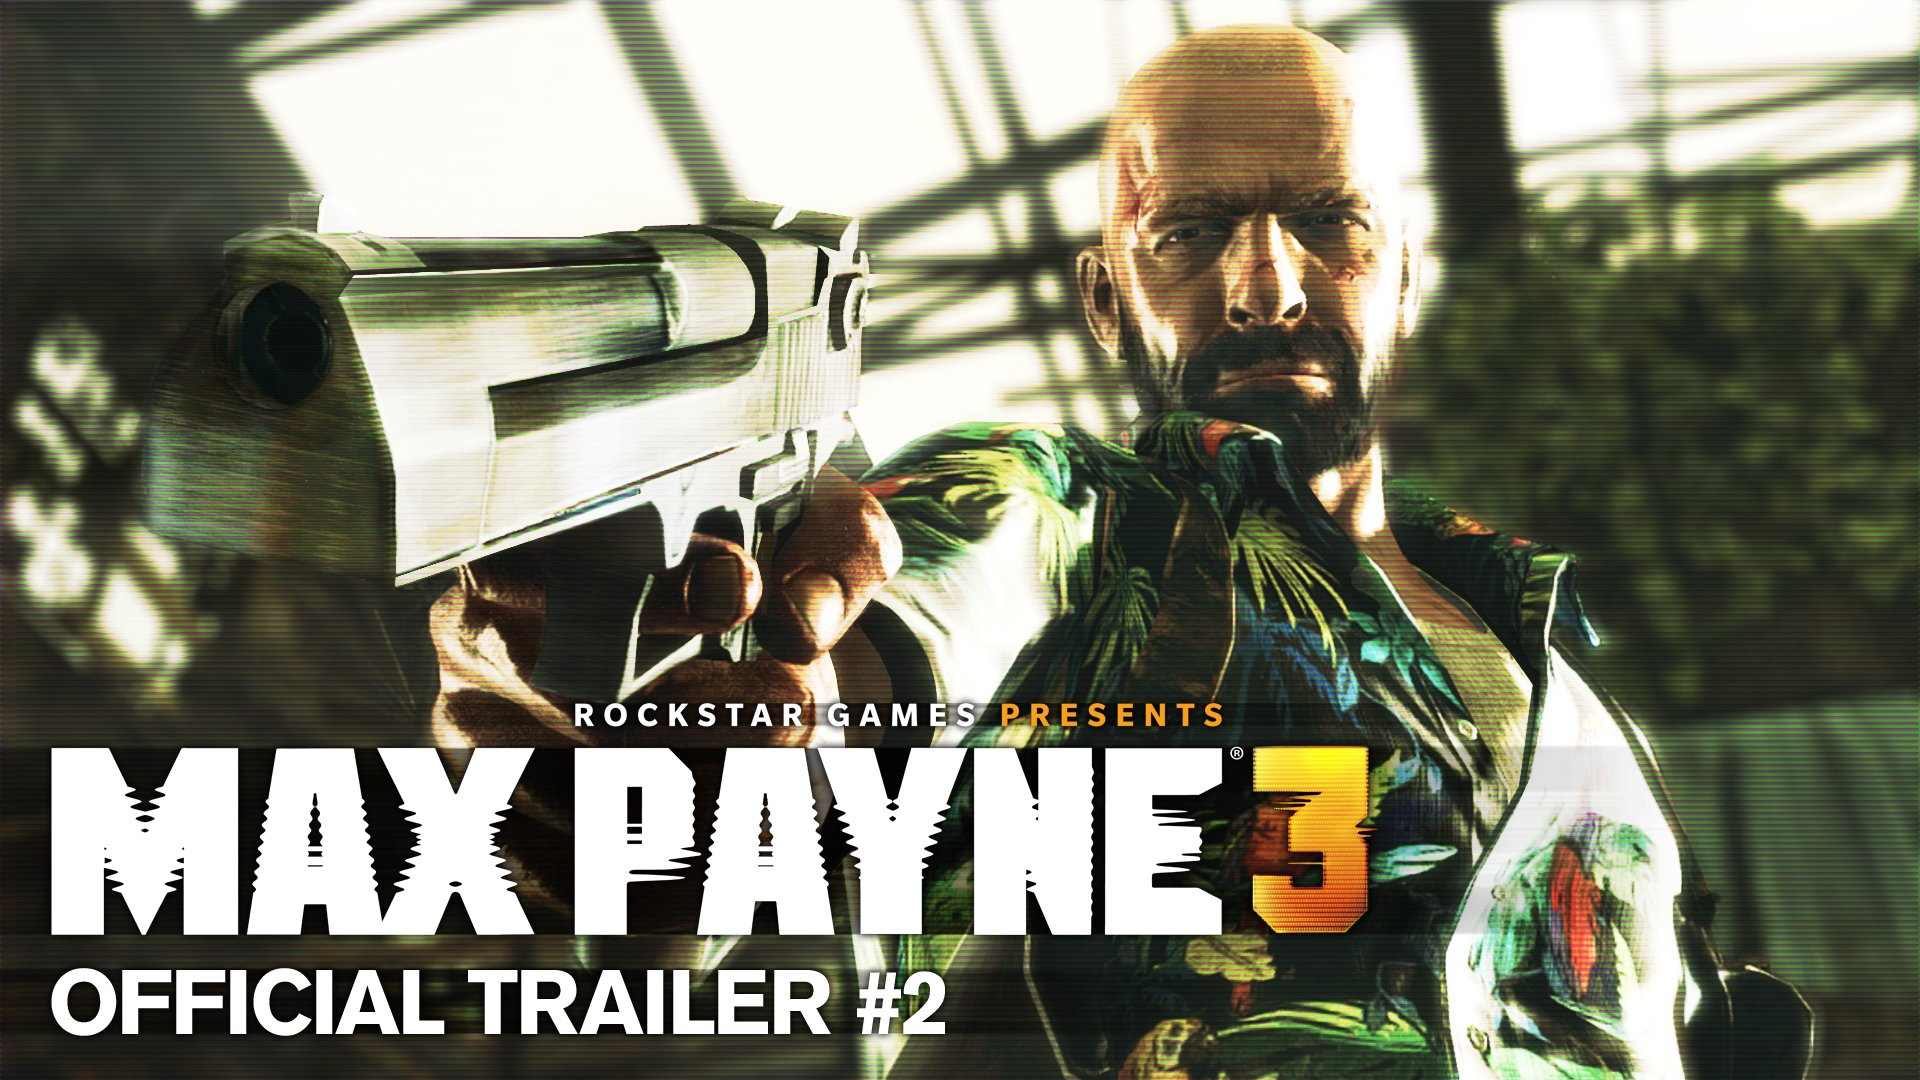 New Max Payne 3 Trailer Shows That Looking For Danger May Not Be A